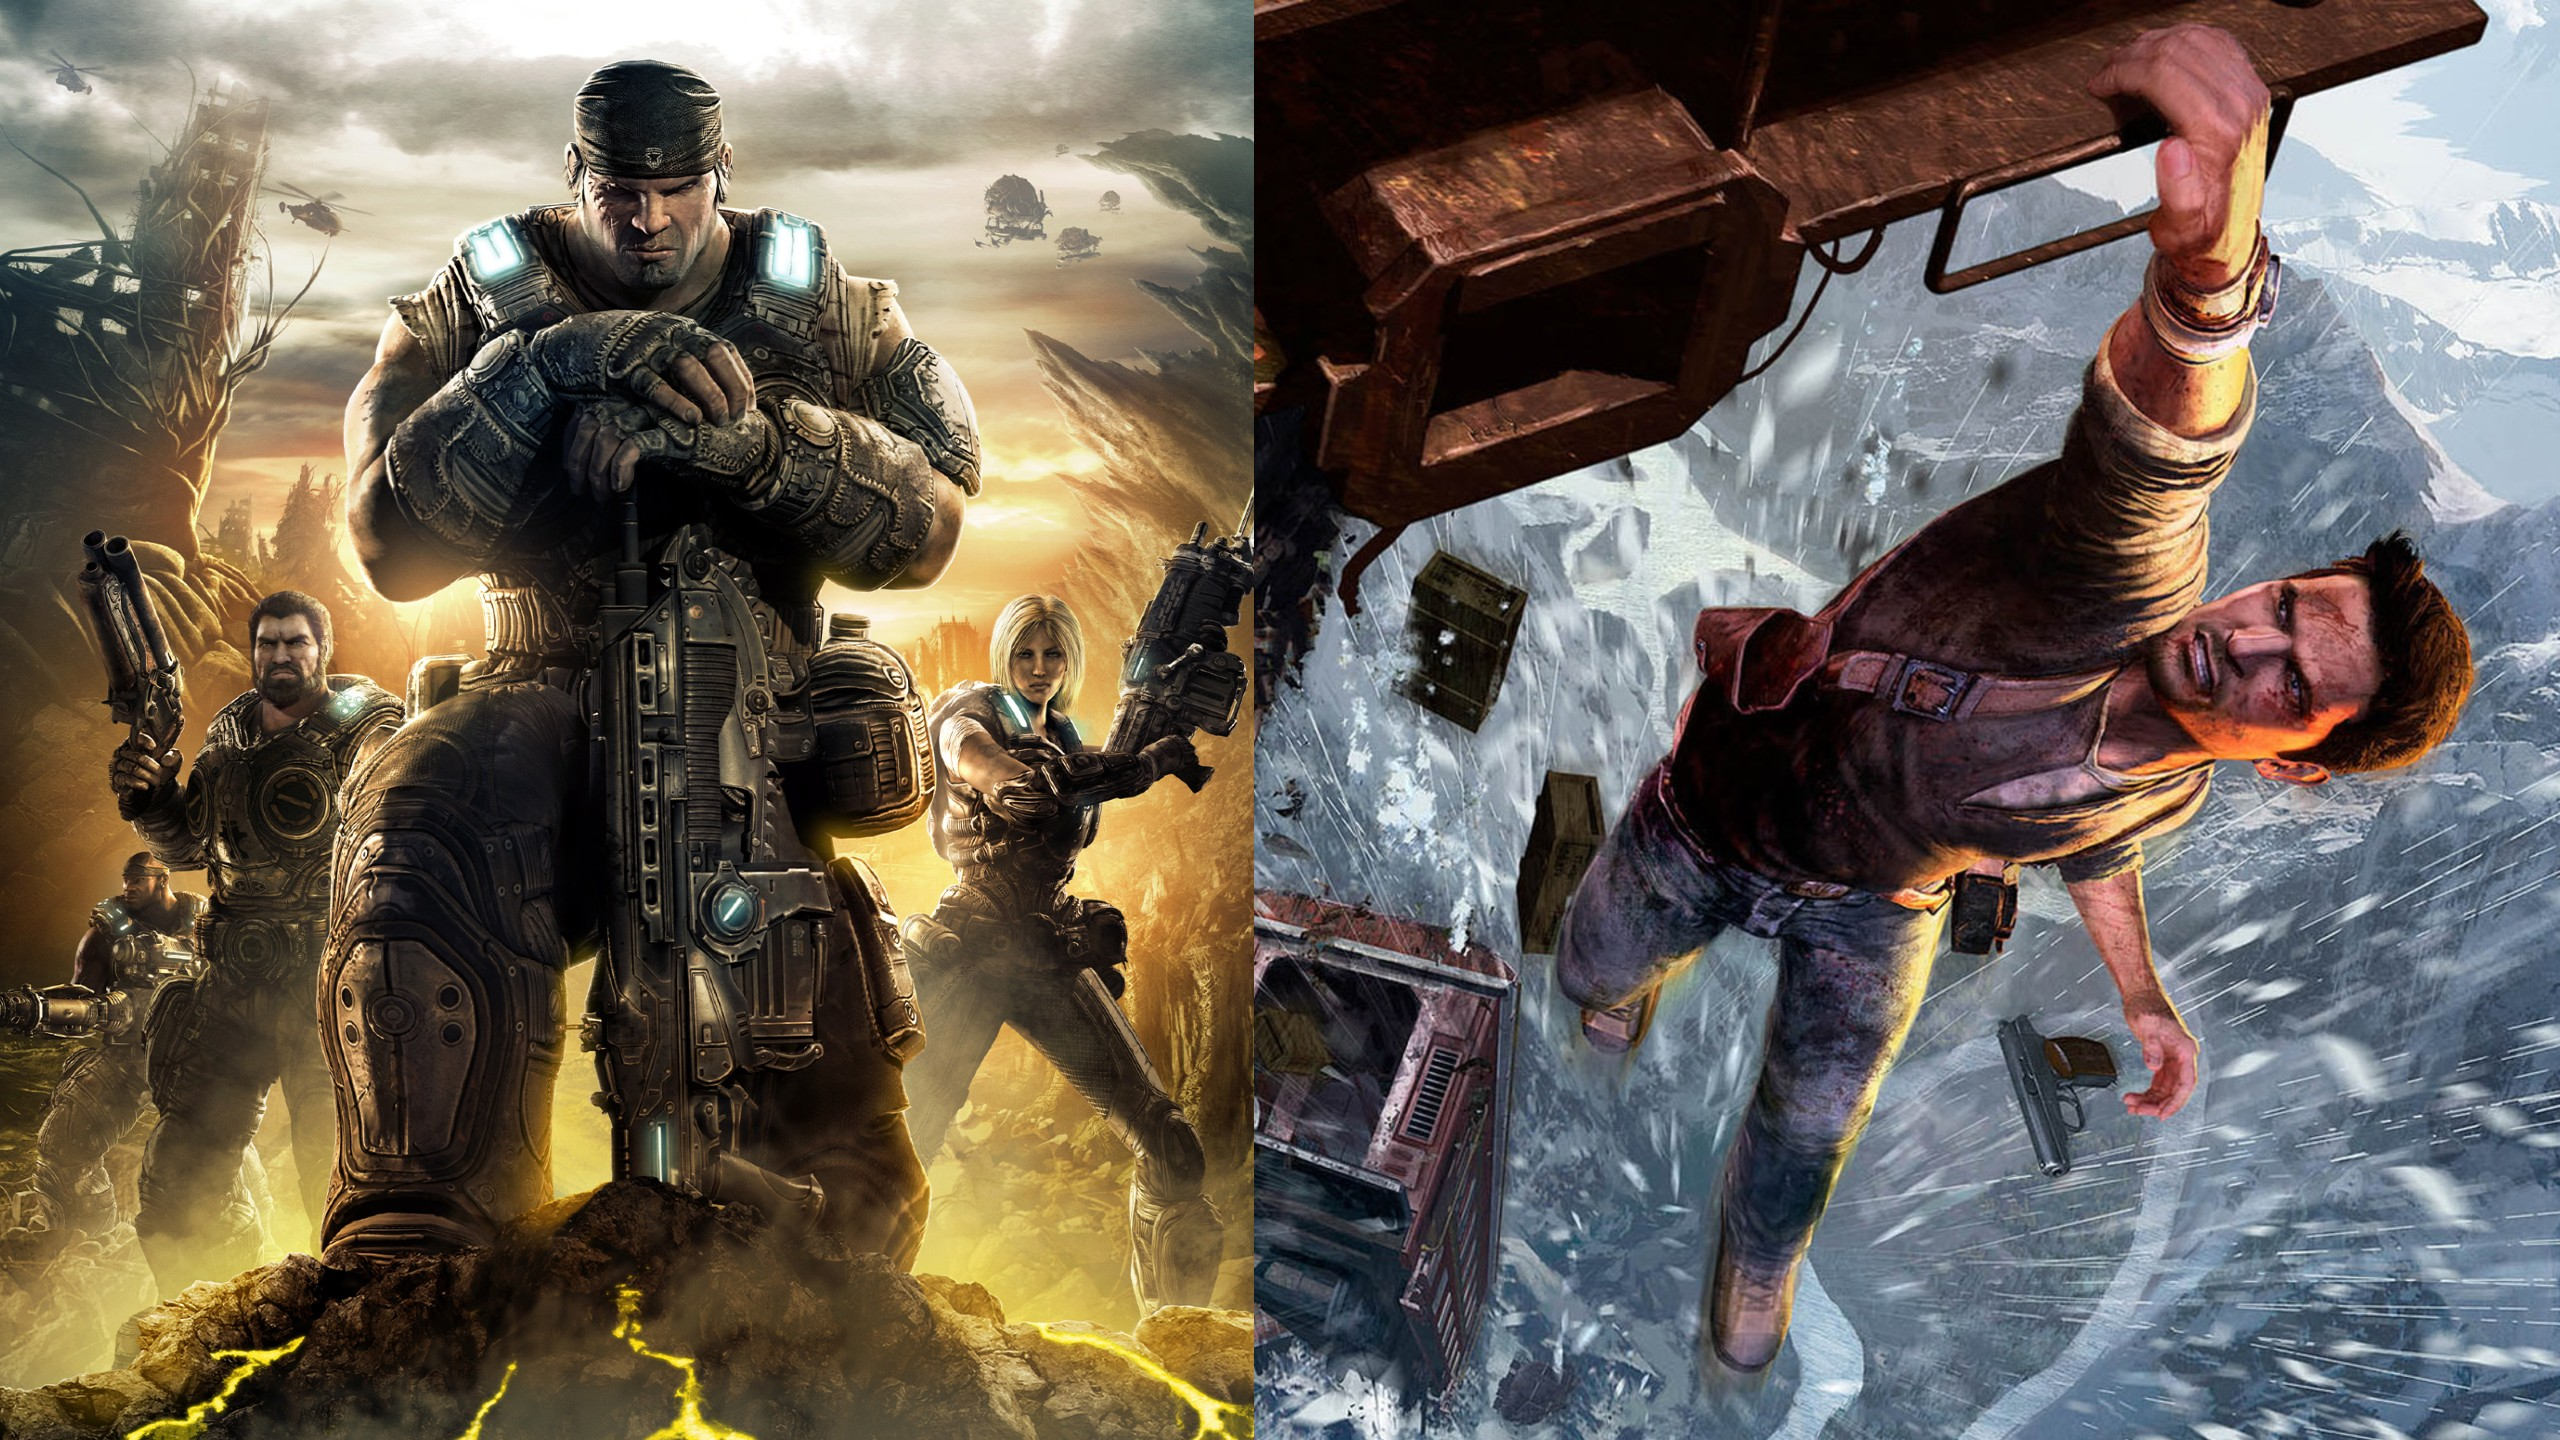 """PS3 & Xbox 360 Era Considered the """"Golden Era"""" in Gaming"""